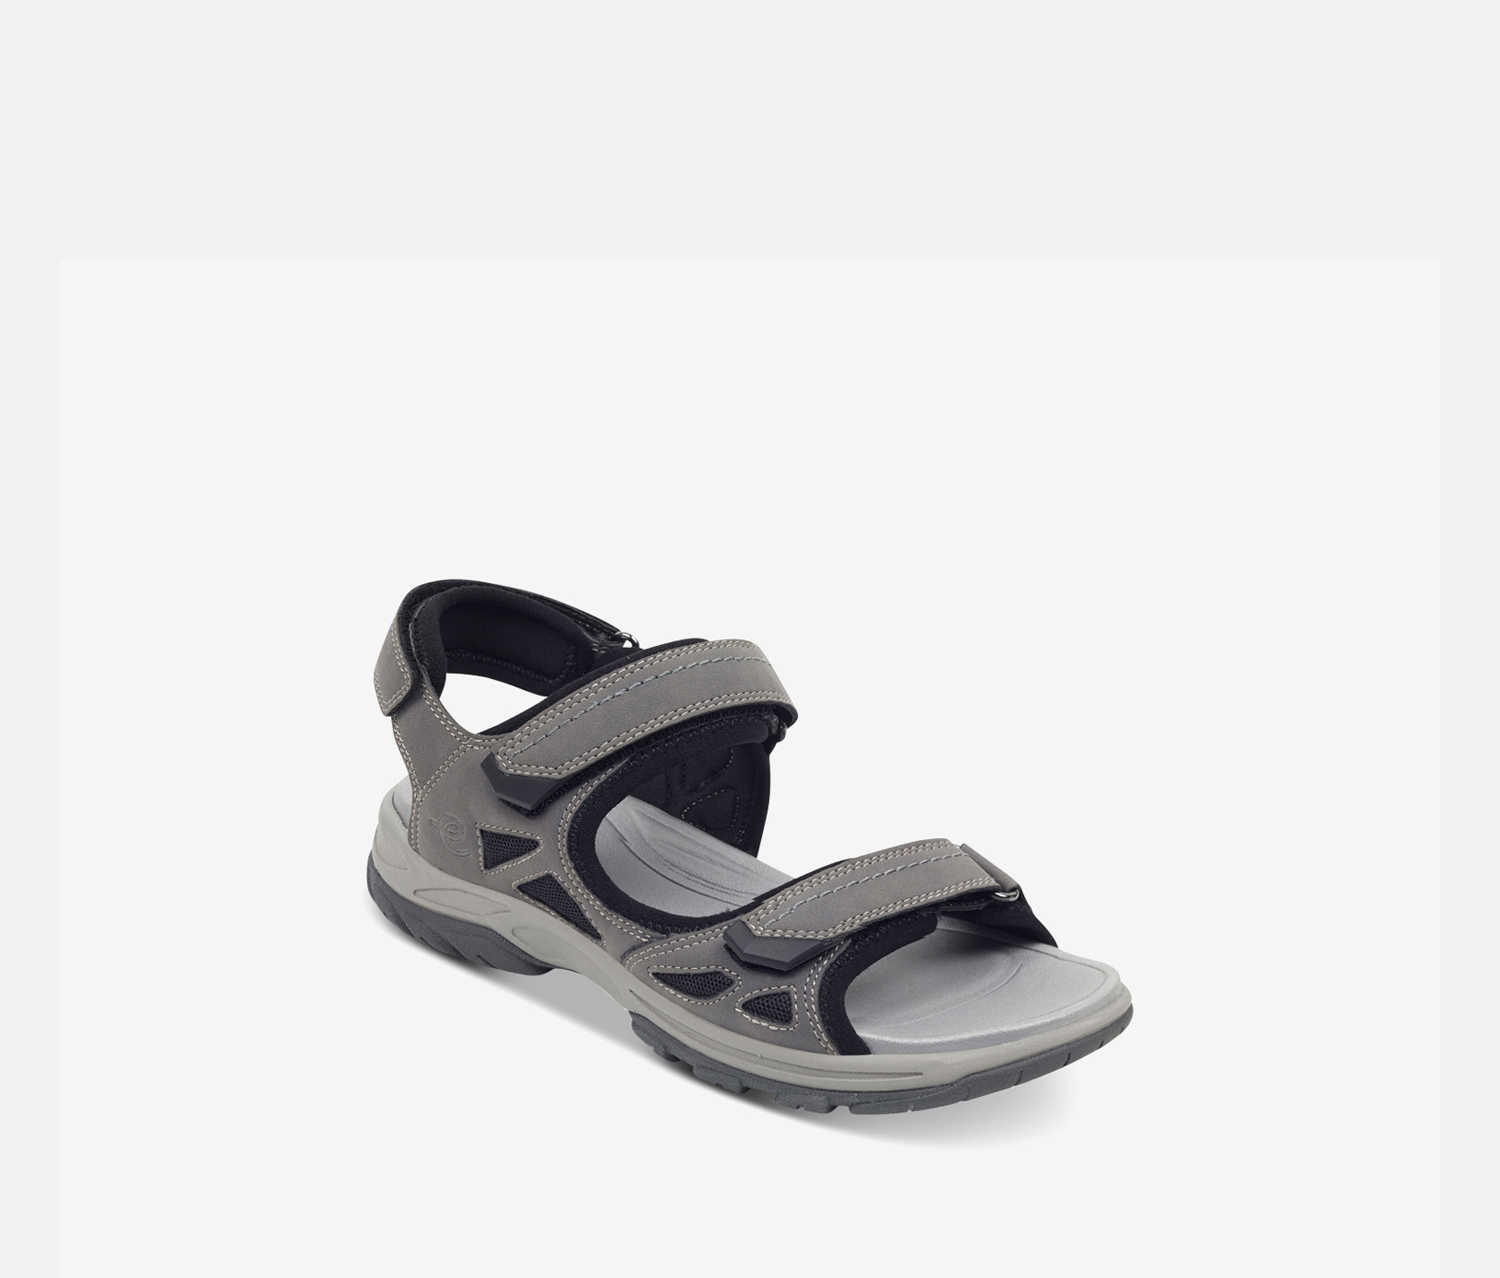 Women's Flat Sandals, Dark Grey